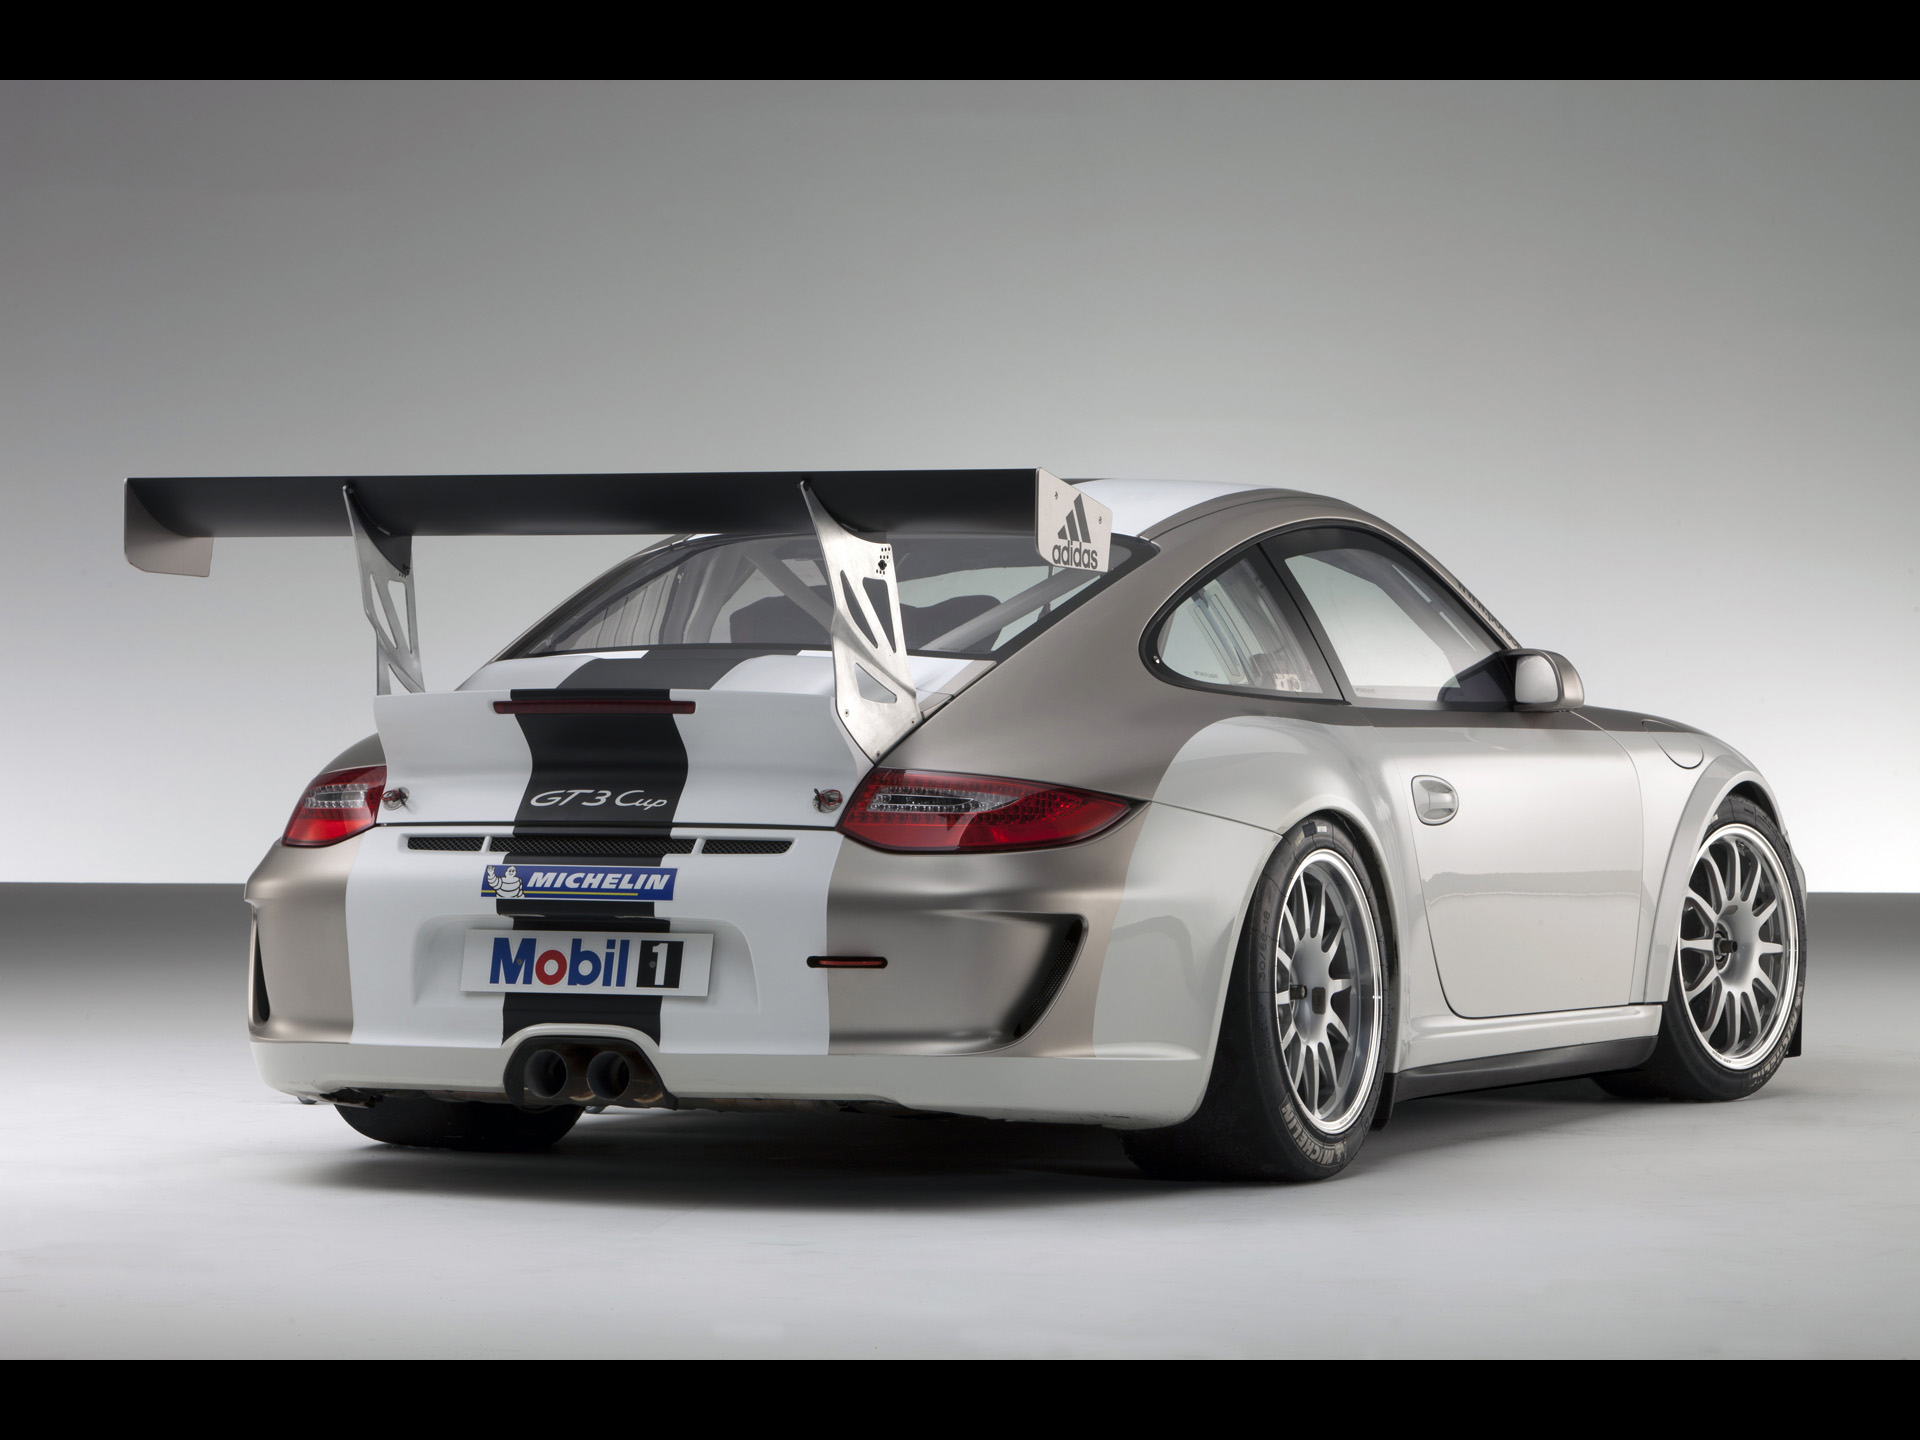 2012 Porsche 911 GT3 Cup   Rear Angle   1920x1440   Wallpaper 1920x1440